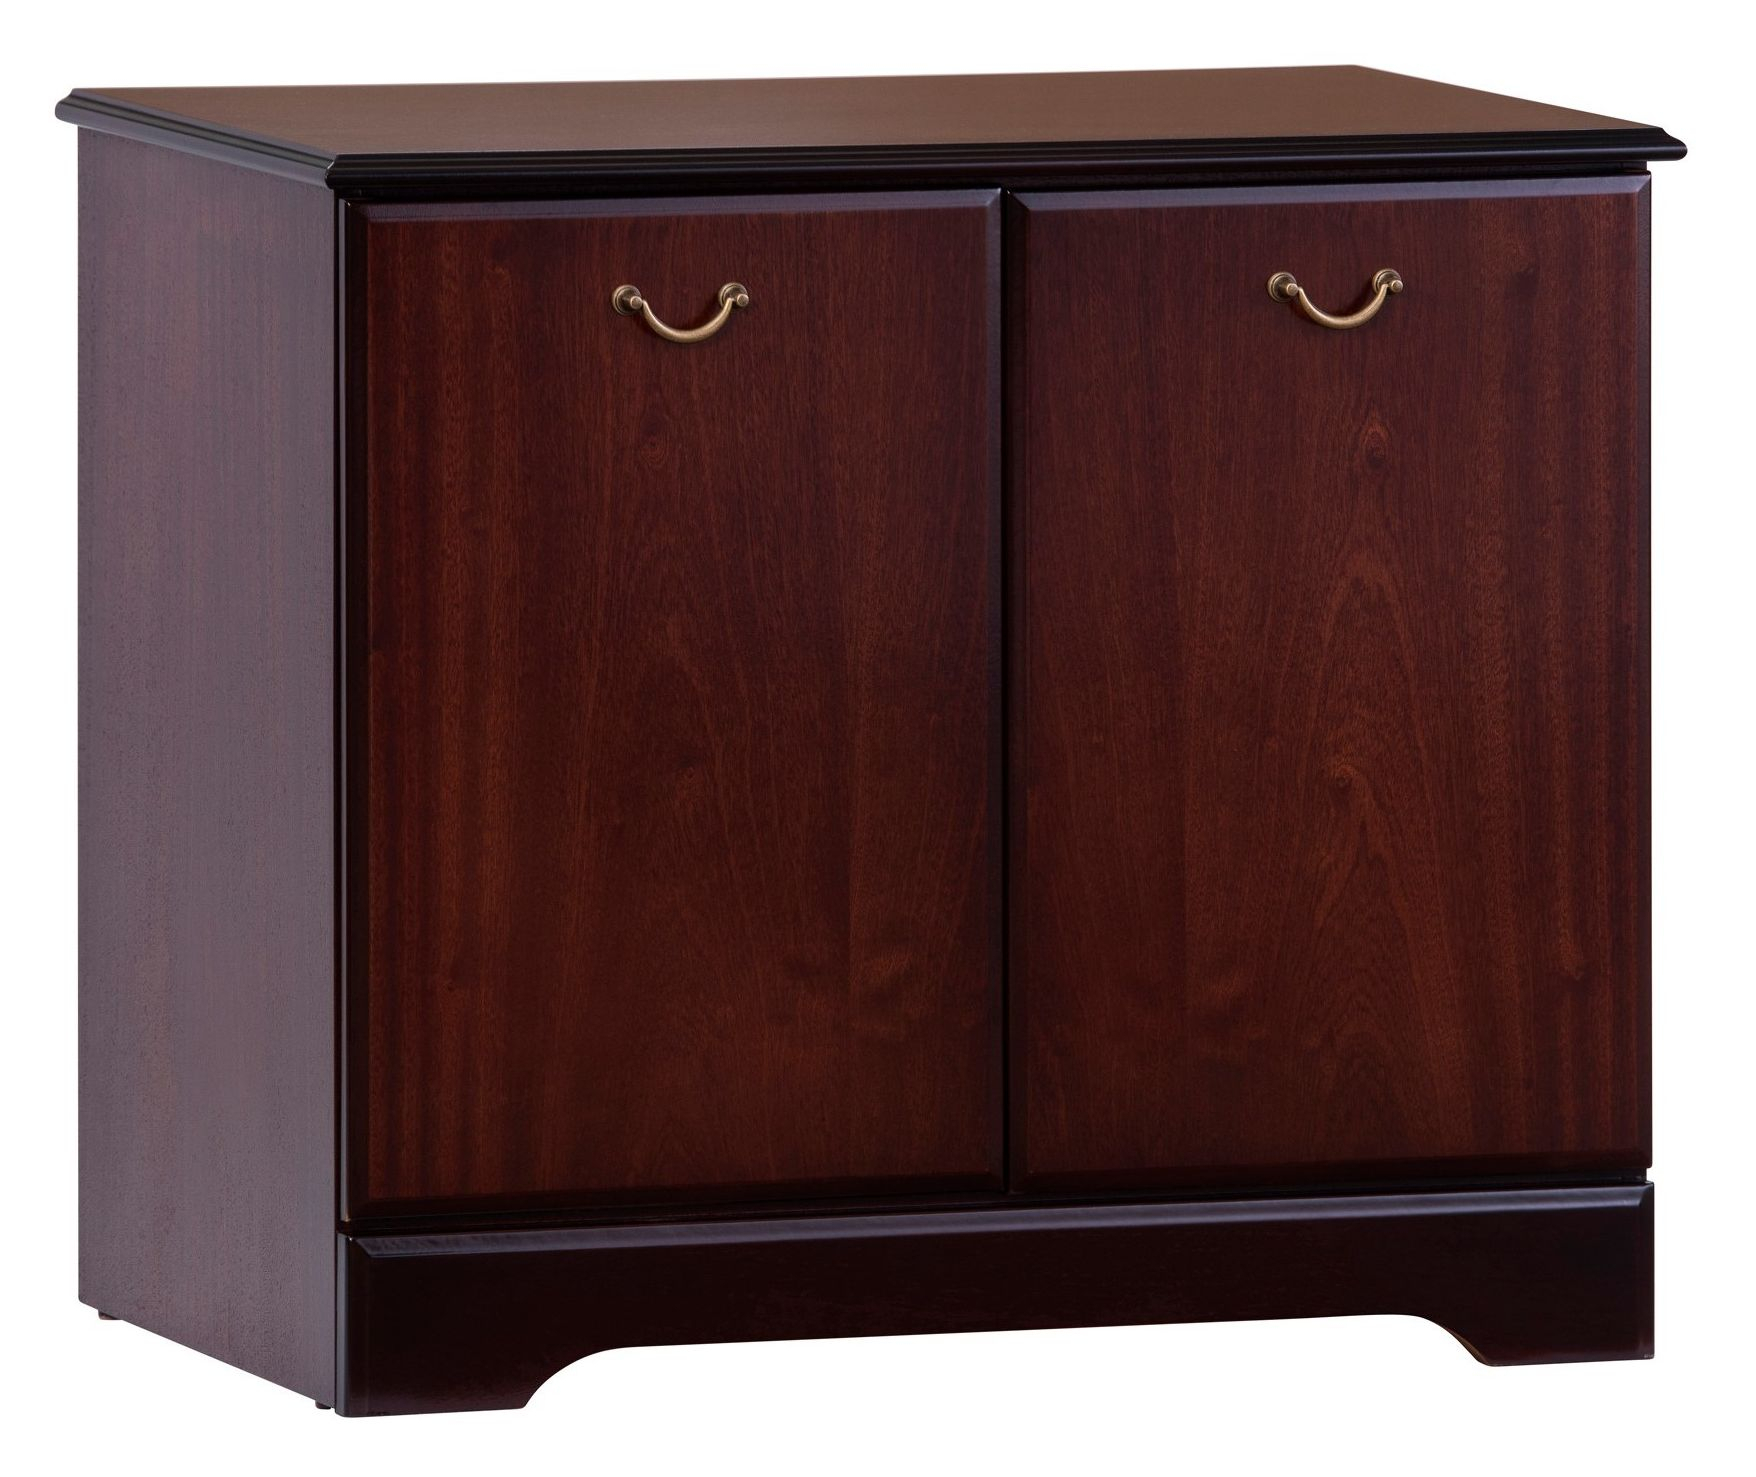 Gola Clifton / Downton 2 Door Sideboard With Most Current Clifton Sideboards (View 19 of 20)